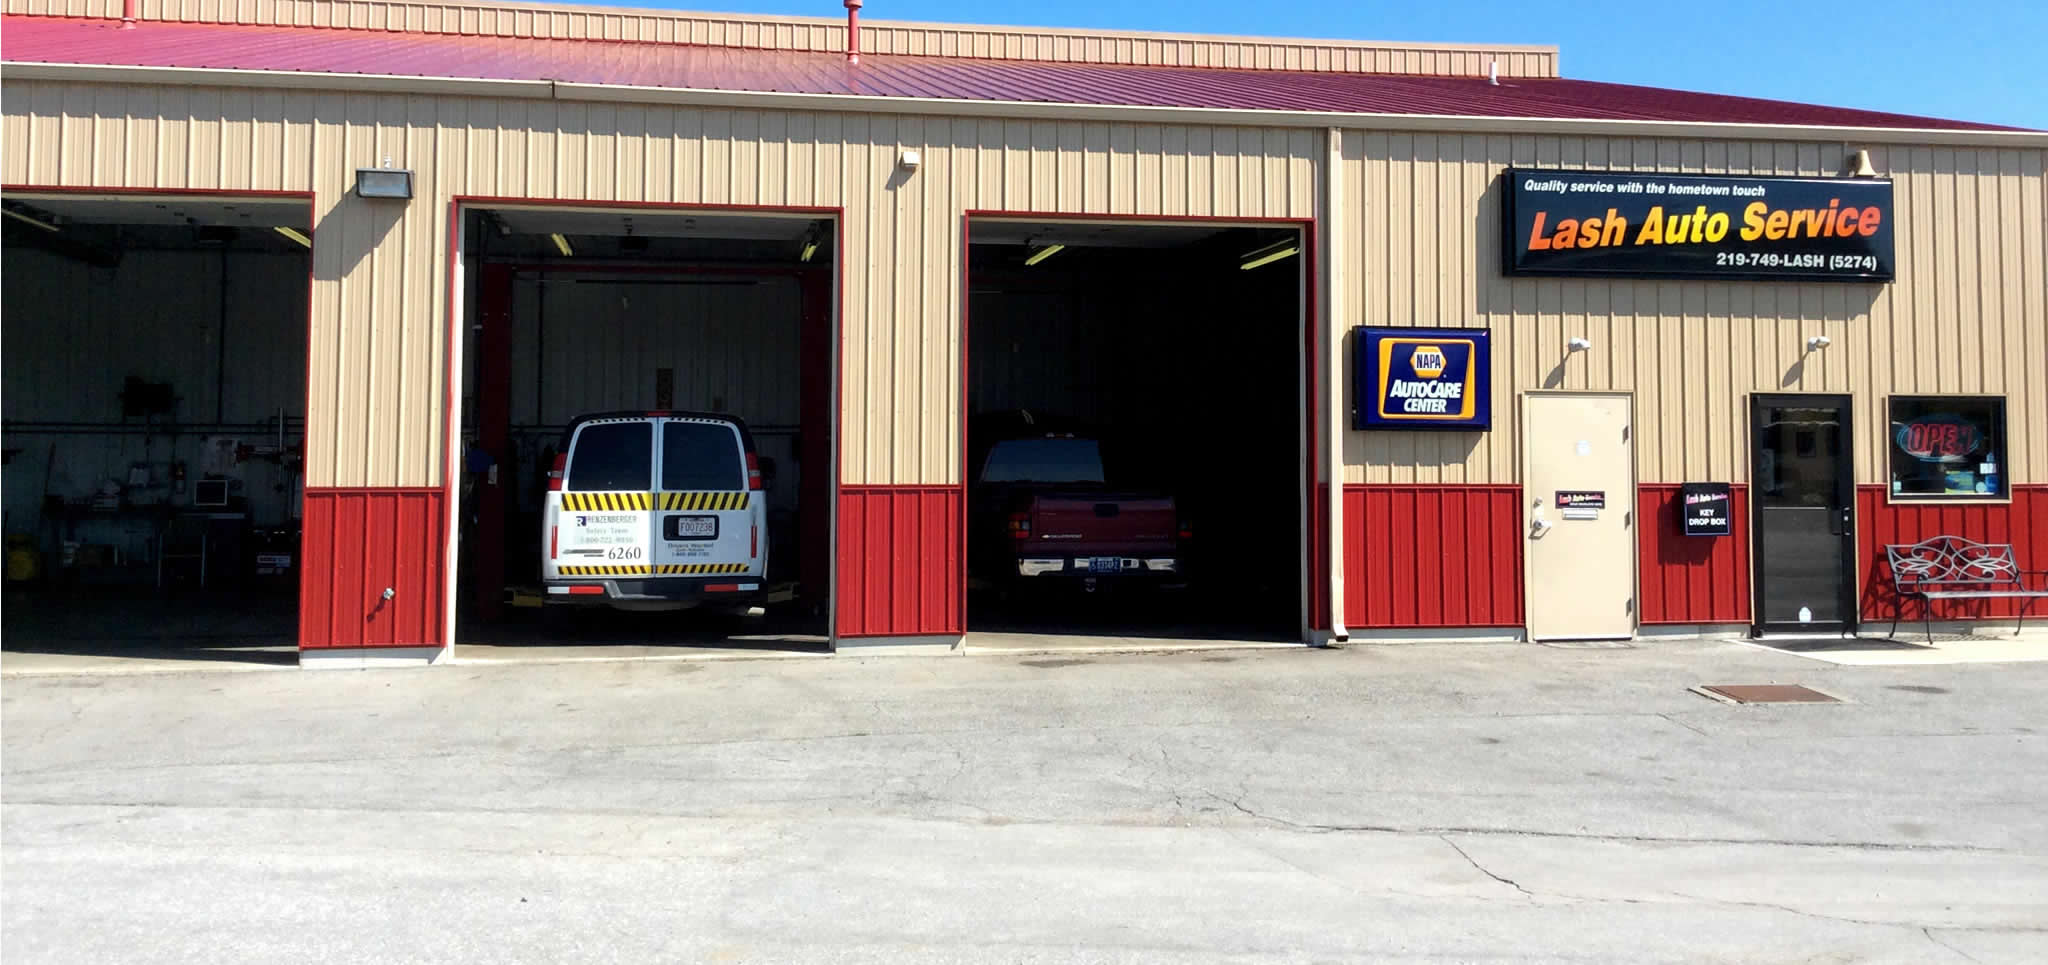 Auto Repair Service for Vehicles, Trucks and Fleet Service